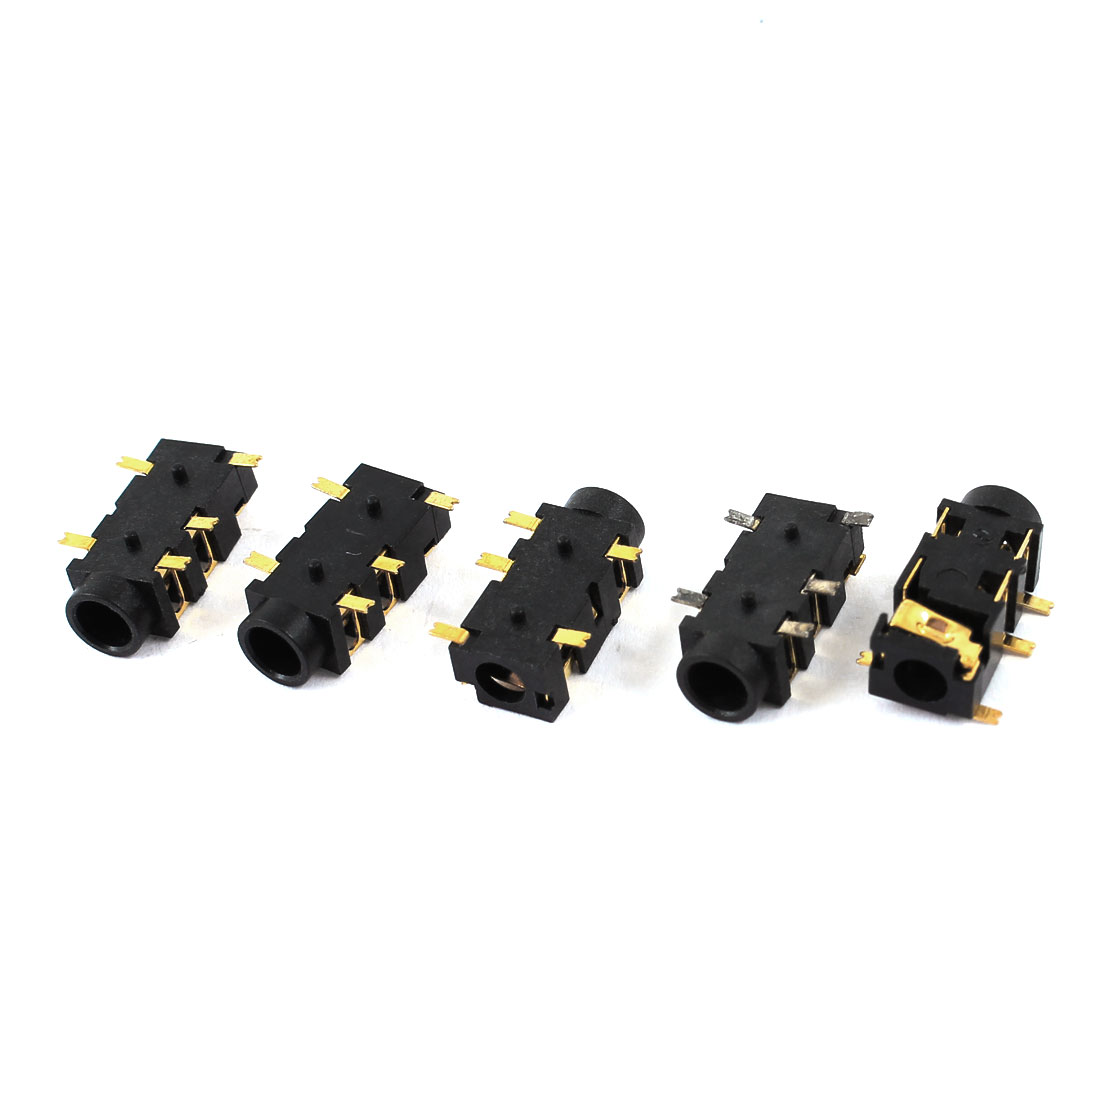 5 Pcs 3.5mm Female 5 Pins SMT SMD Stereo Jack Sockets Connectors Adapter